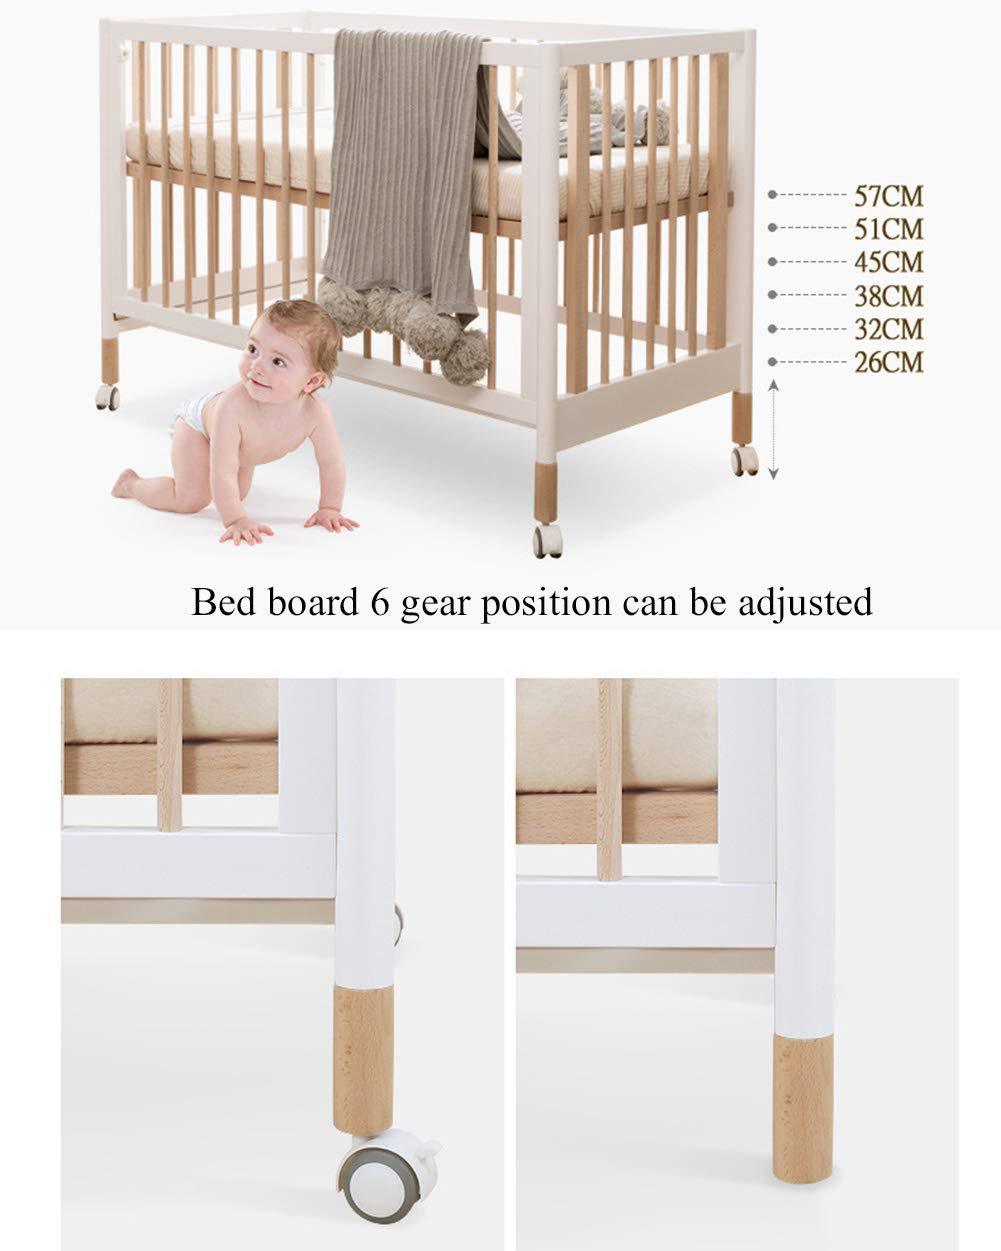 XUNMAIFLB Removable Solid Baby Cot Bed Wooden Toddler Bed, Swing Bed, Baby Beech Bed, Adjustable Comfort Bed 120 * 60cm (game Bed + Splicing Bed) Safety XUNMAIFLB Sofa bed: The side rail slides down to the bottom and becomes a sofa bed, suitable for toddlers or babies over 3 years old. Five variations: Cribs that can accompany your baby, 0-6months crib mode (1-2 files); 6-12months crib mode (3-4 files); 1-3years of age game bed mode (5 -6 files); 3years of age+ sofa bed mode. Silent casters: One button unlocks the mute, smooth, does not hurt the floor, and is light and effortless. 5